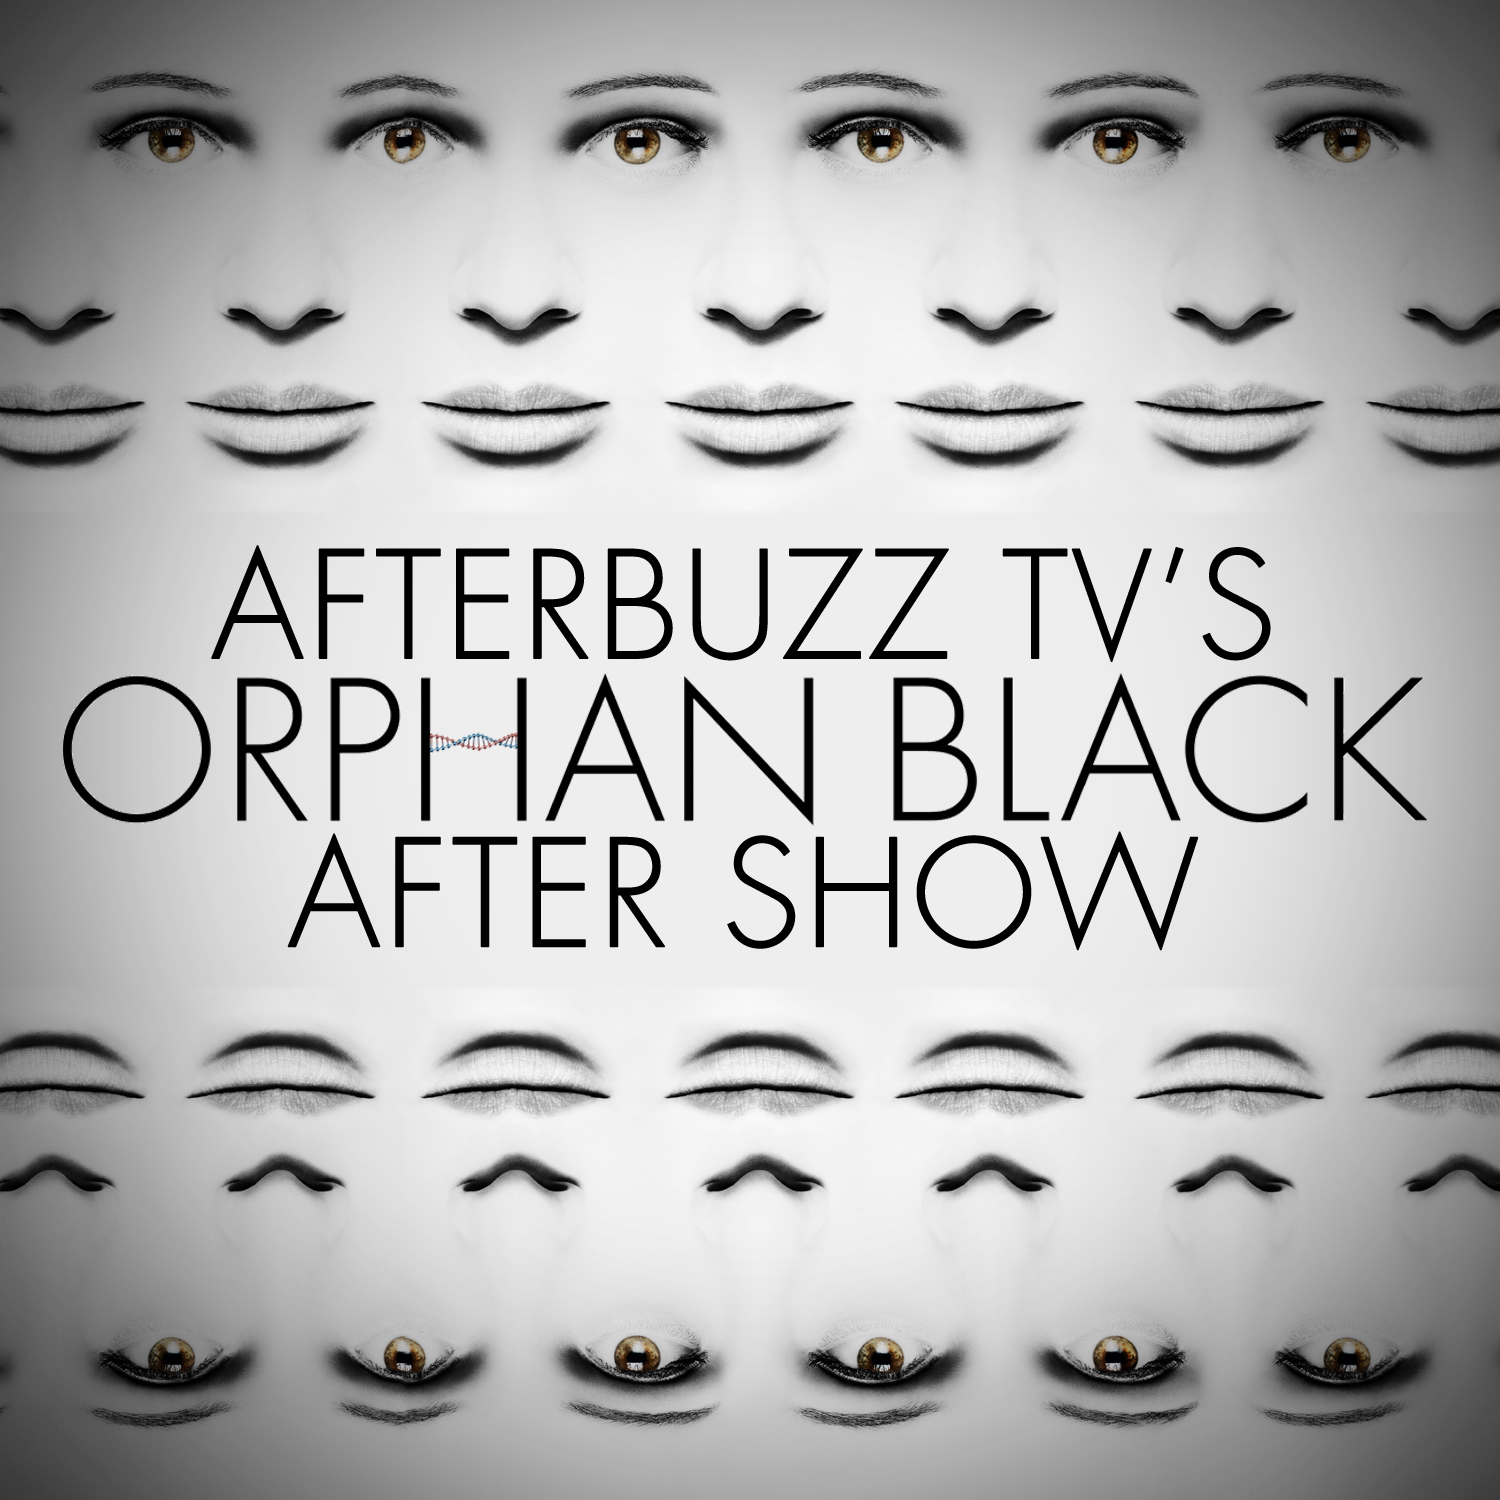 Orphan Black After Show